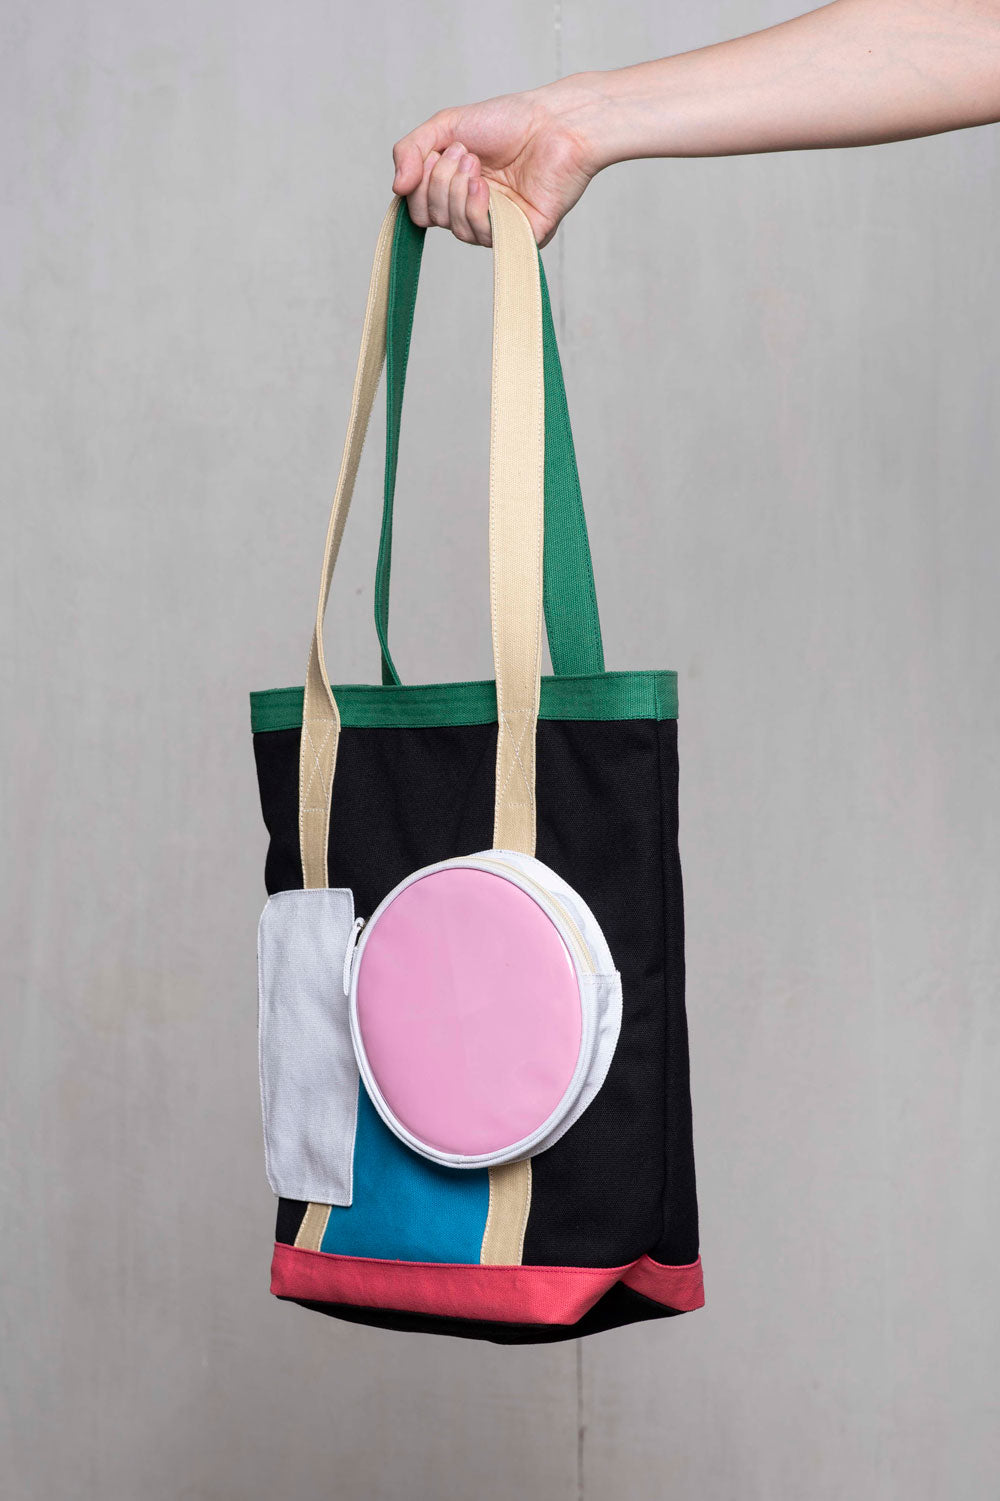 RANDOLF +ZG Pop Block Tote Bag